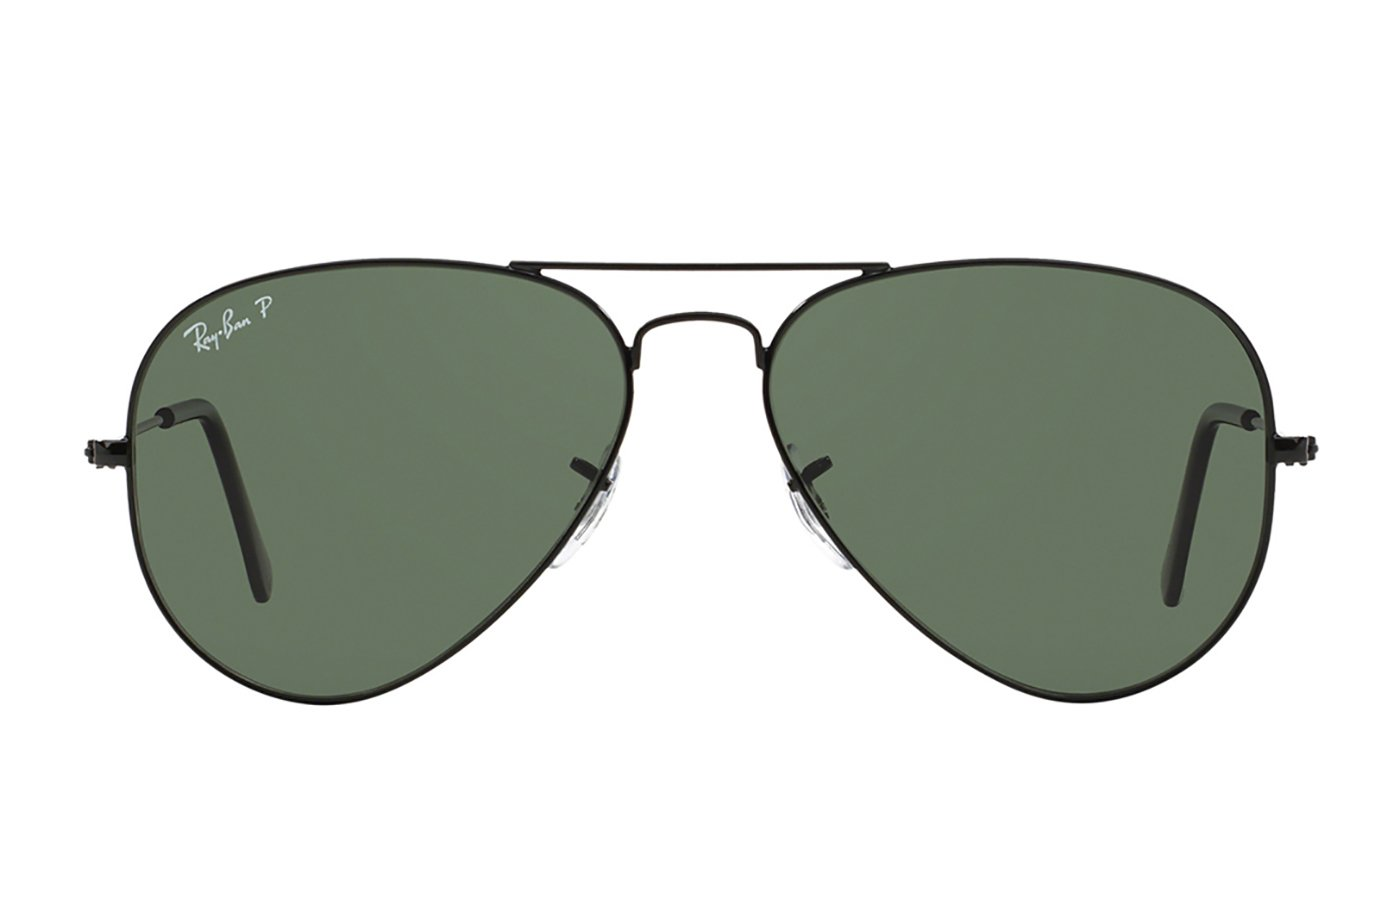 RAY-BAN AVIATOR LARGE METAL 0RB3025 58 002/58 BLACK POLARIZADA